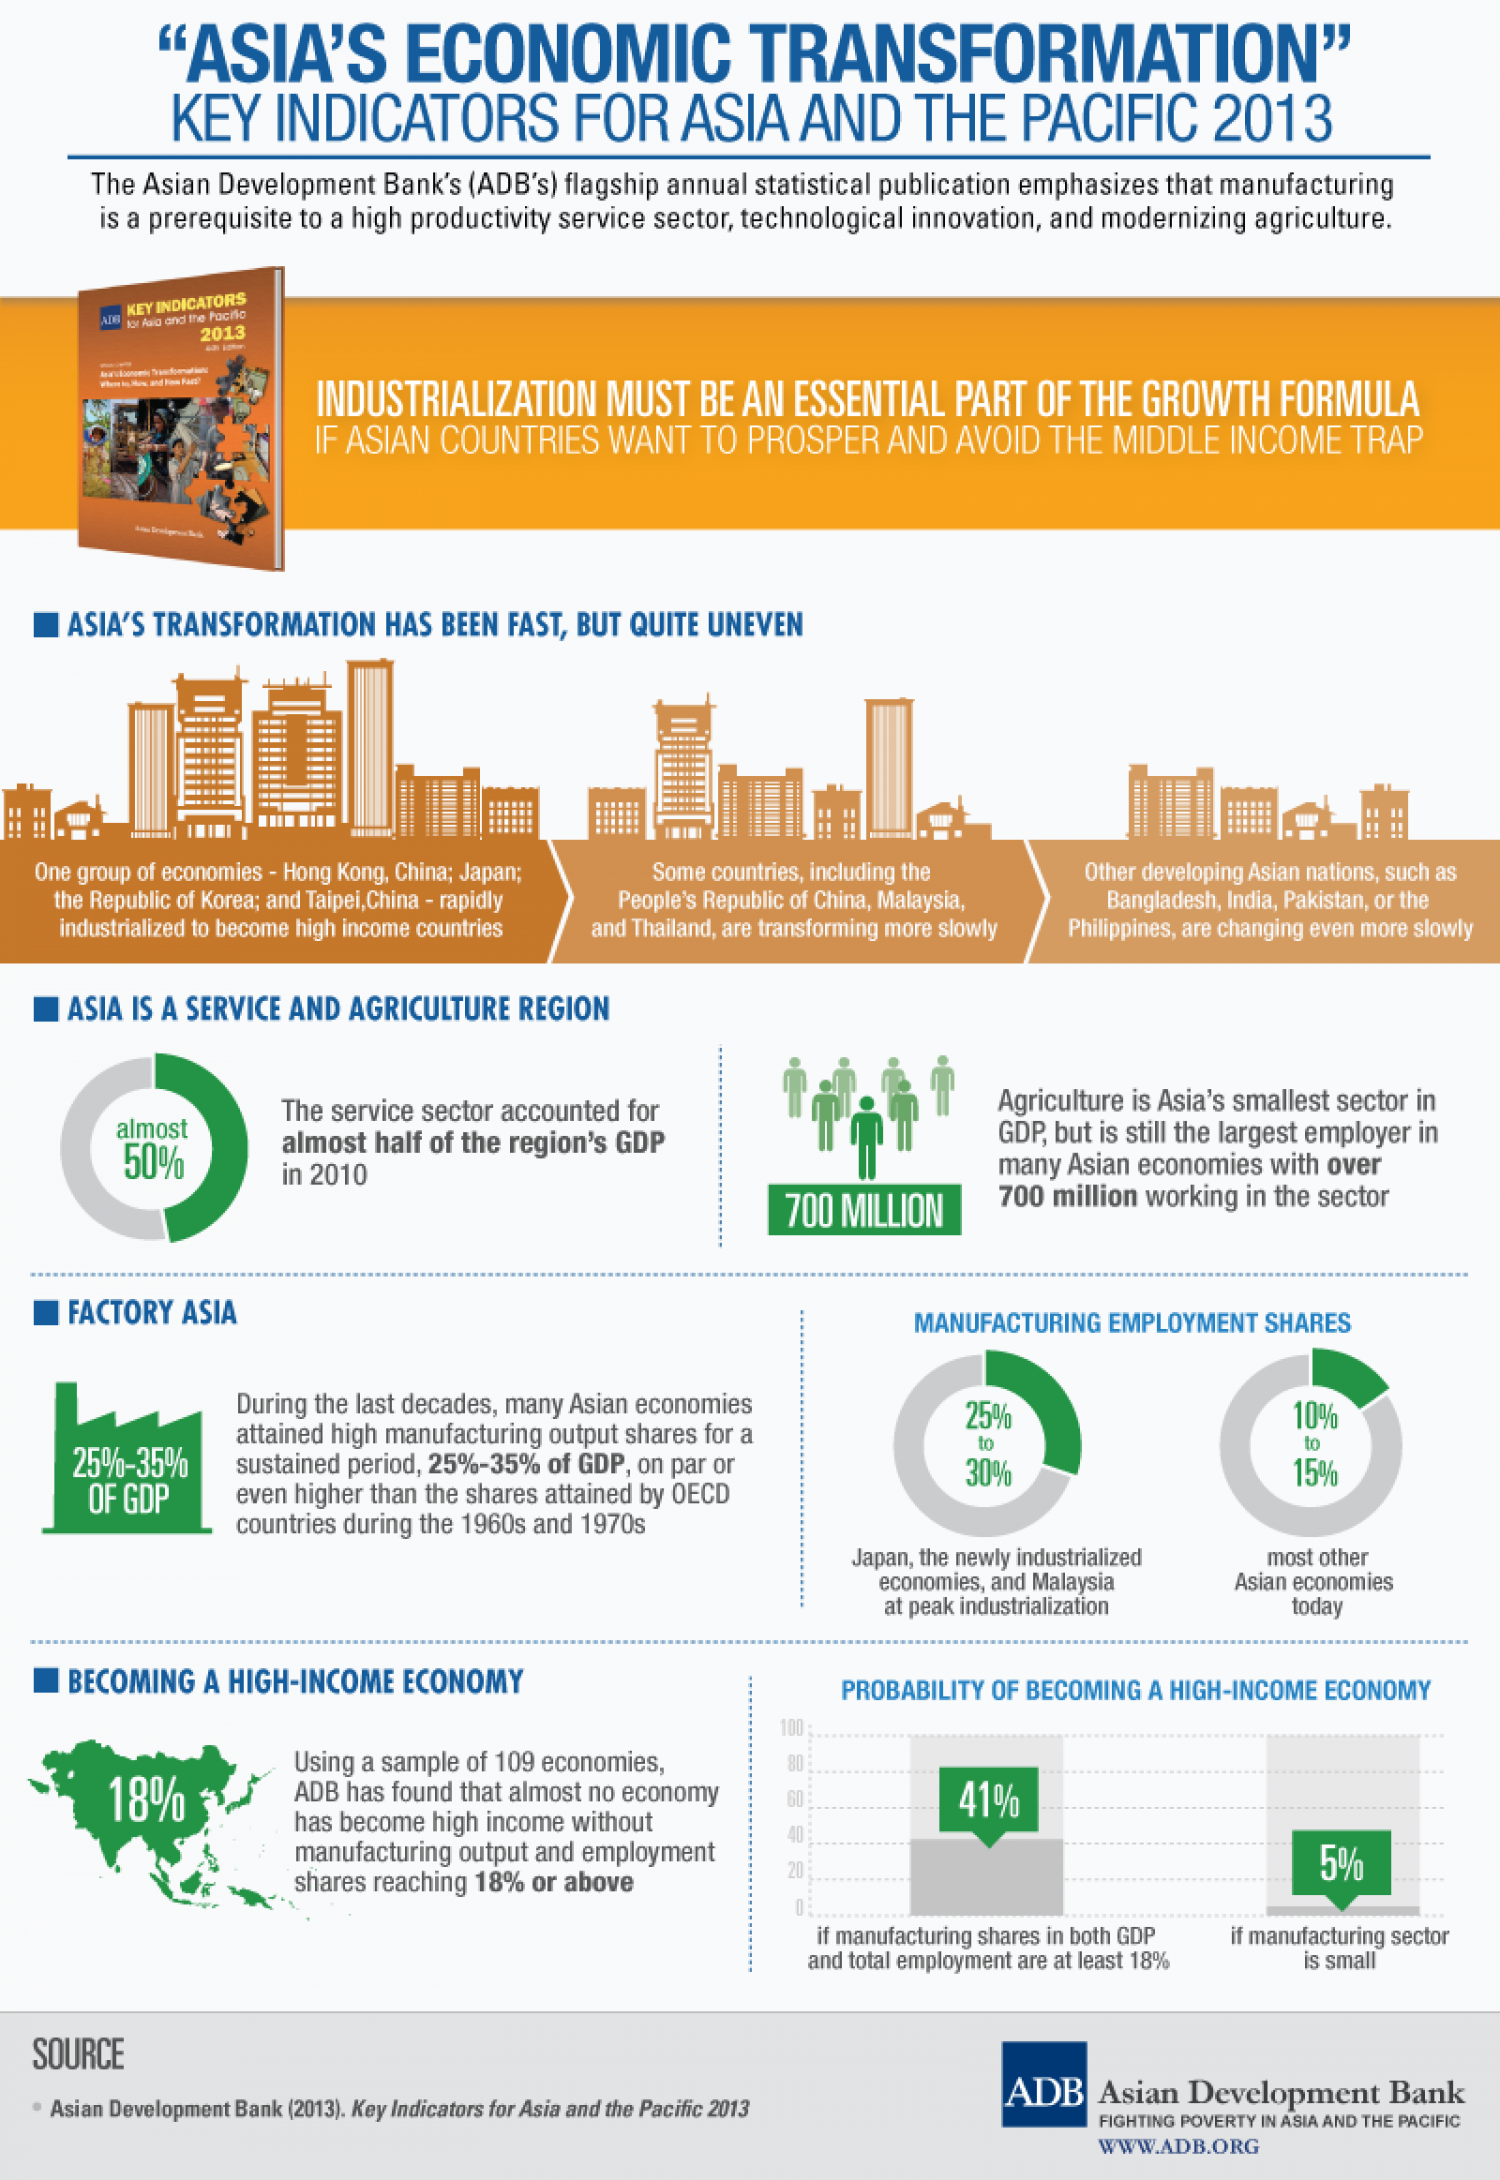 """""""Asia's Economic Transformation"""" - Key Indicators for Asia and the Pacific 2013 Infographic"""